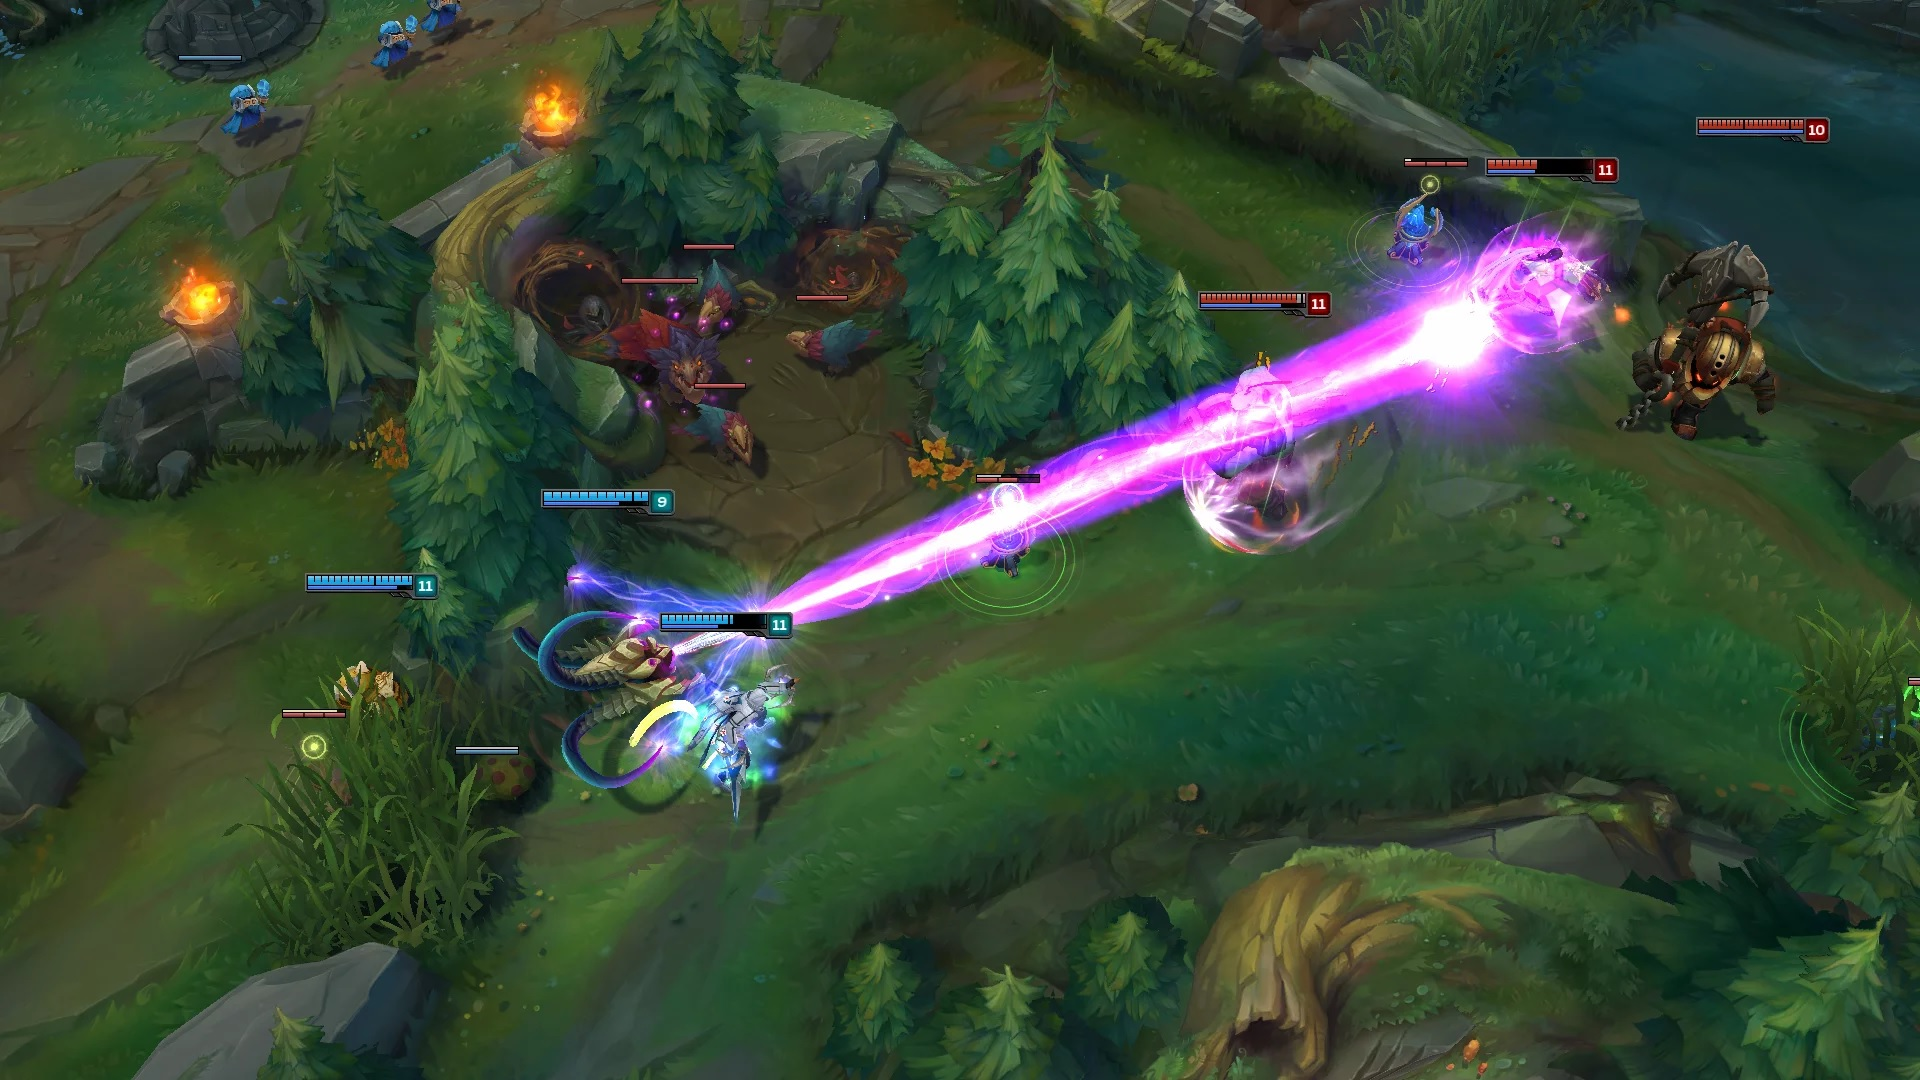 The next League of Legends patch will let you turn off allied chat